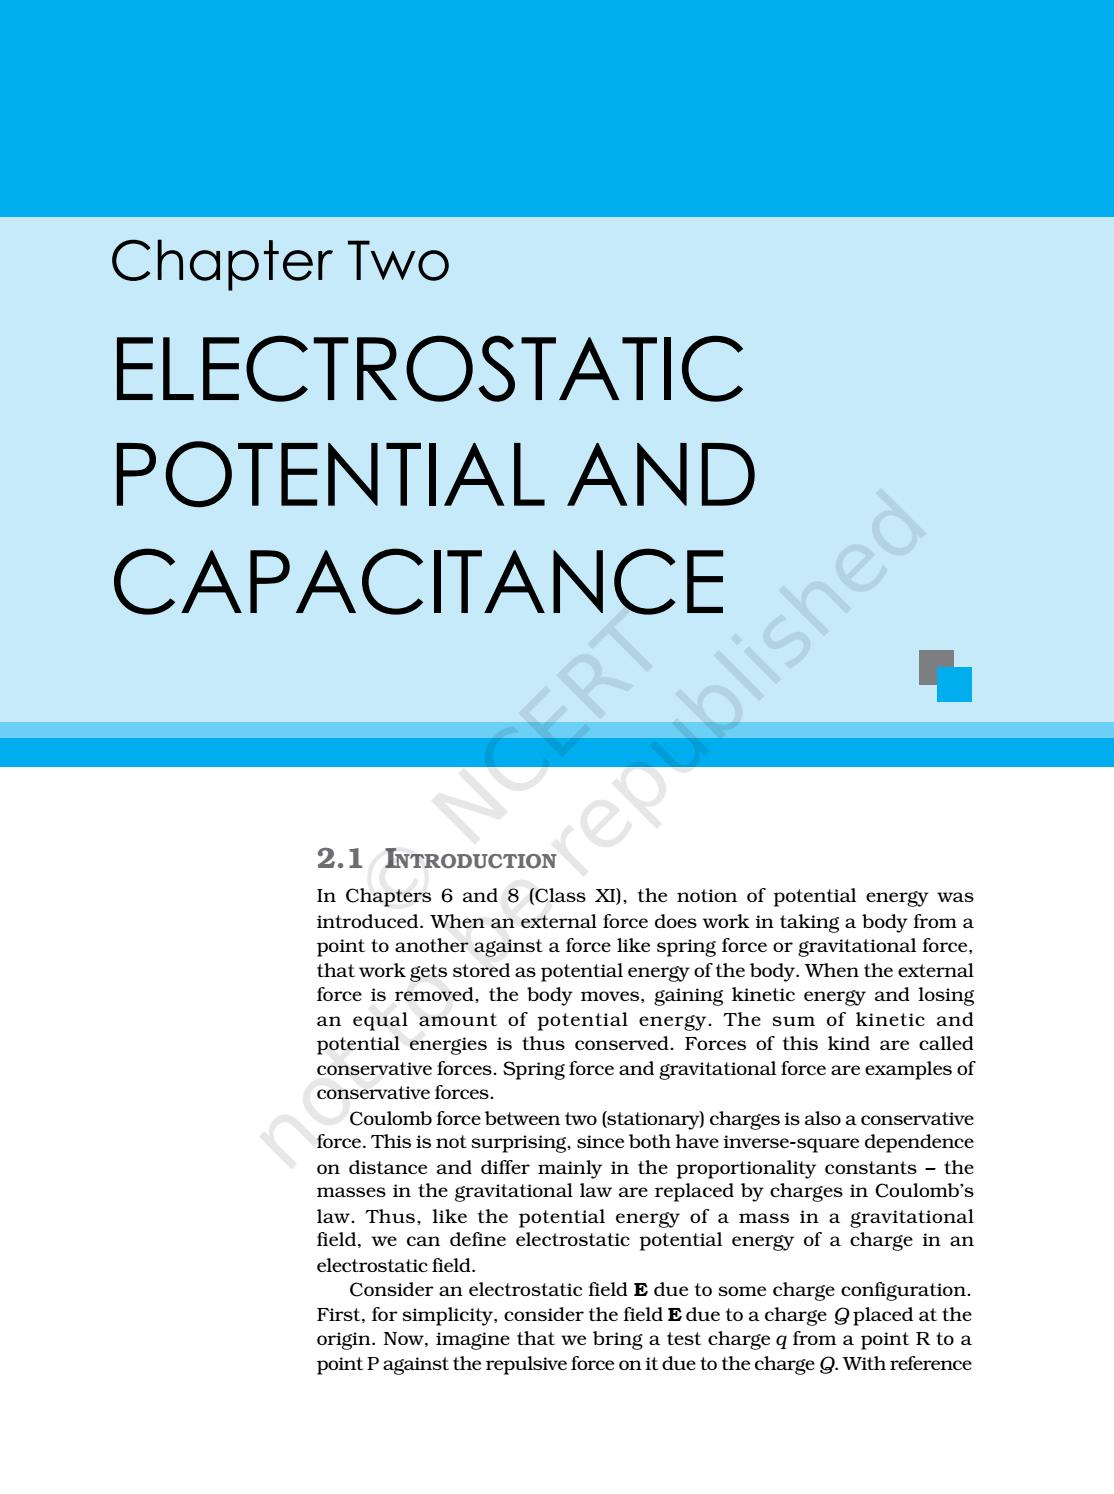 NCERT Electrostatic potential and capacitance by GSK - issuu